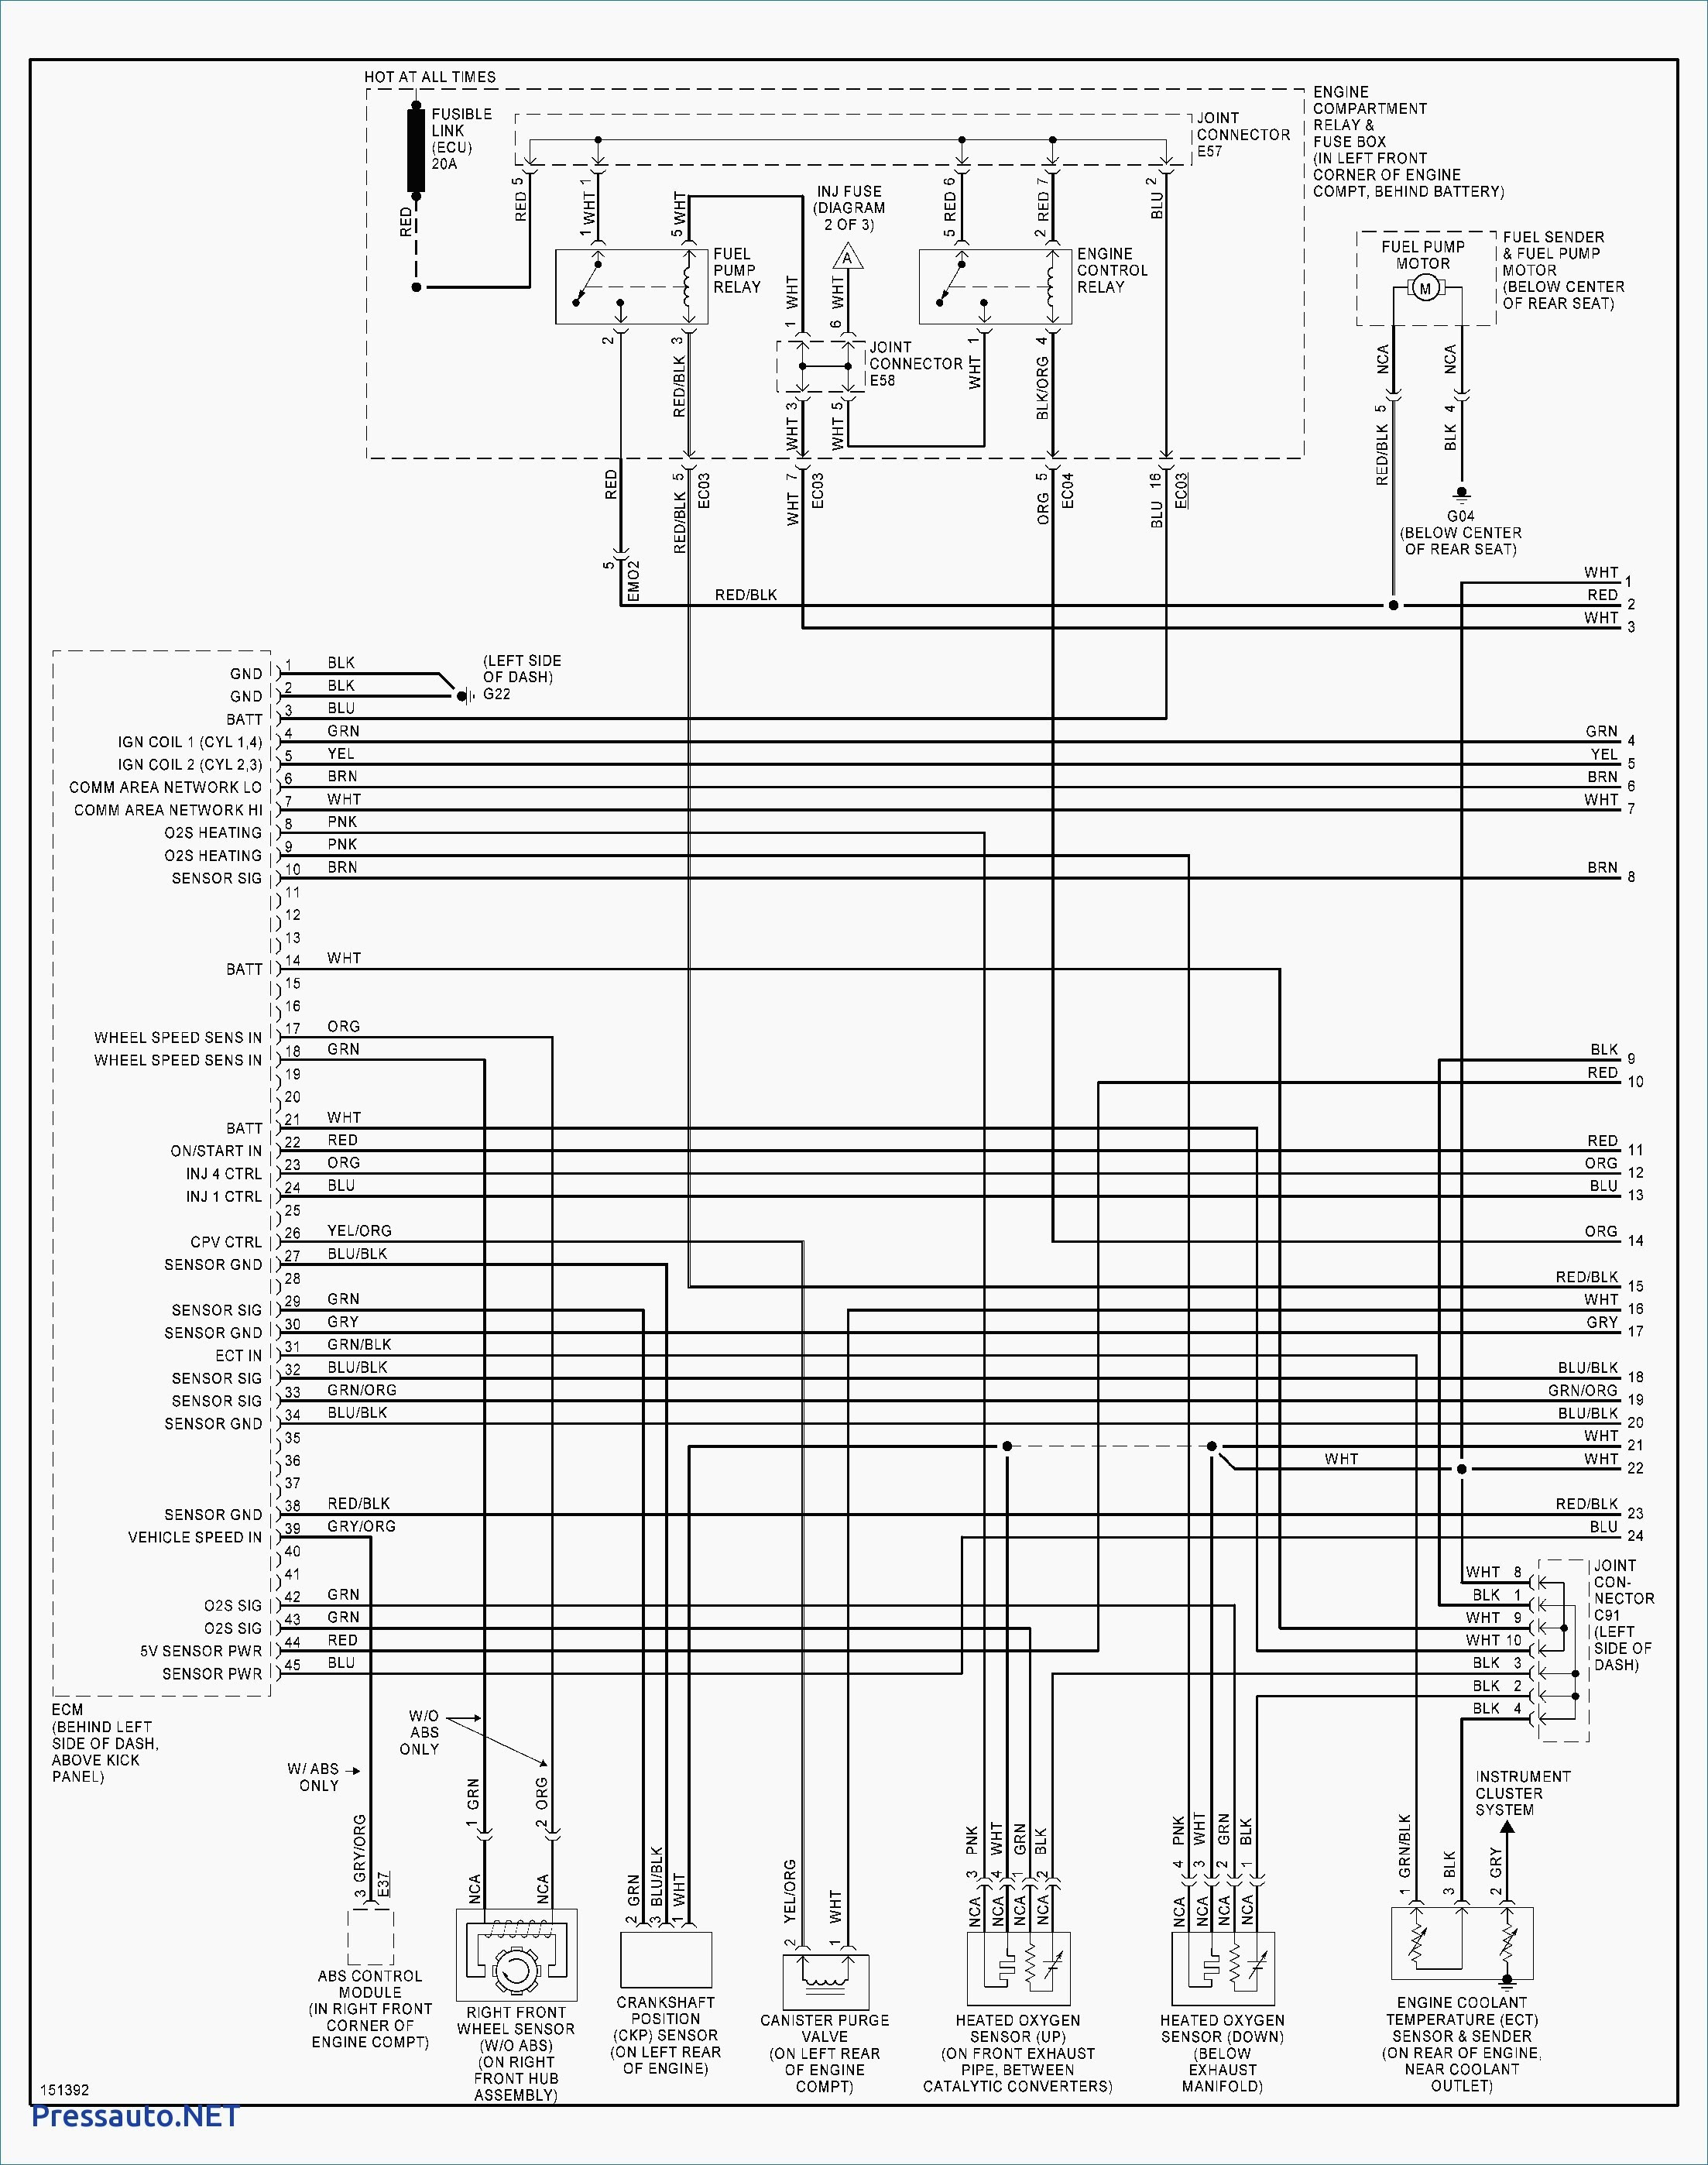 2002 Hyundai Sonata Wiring Diagrams - Wiring Diagram Replace drink-notice -  drink-notice.miramontiseo.it | Hyundai Ac Wiring Diagram |  | drink-notice.miramontiseo.it